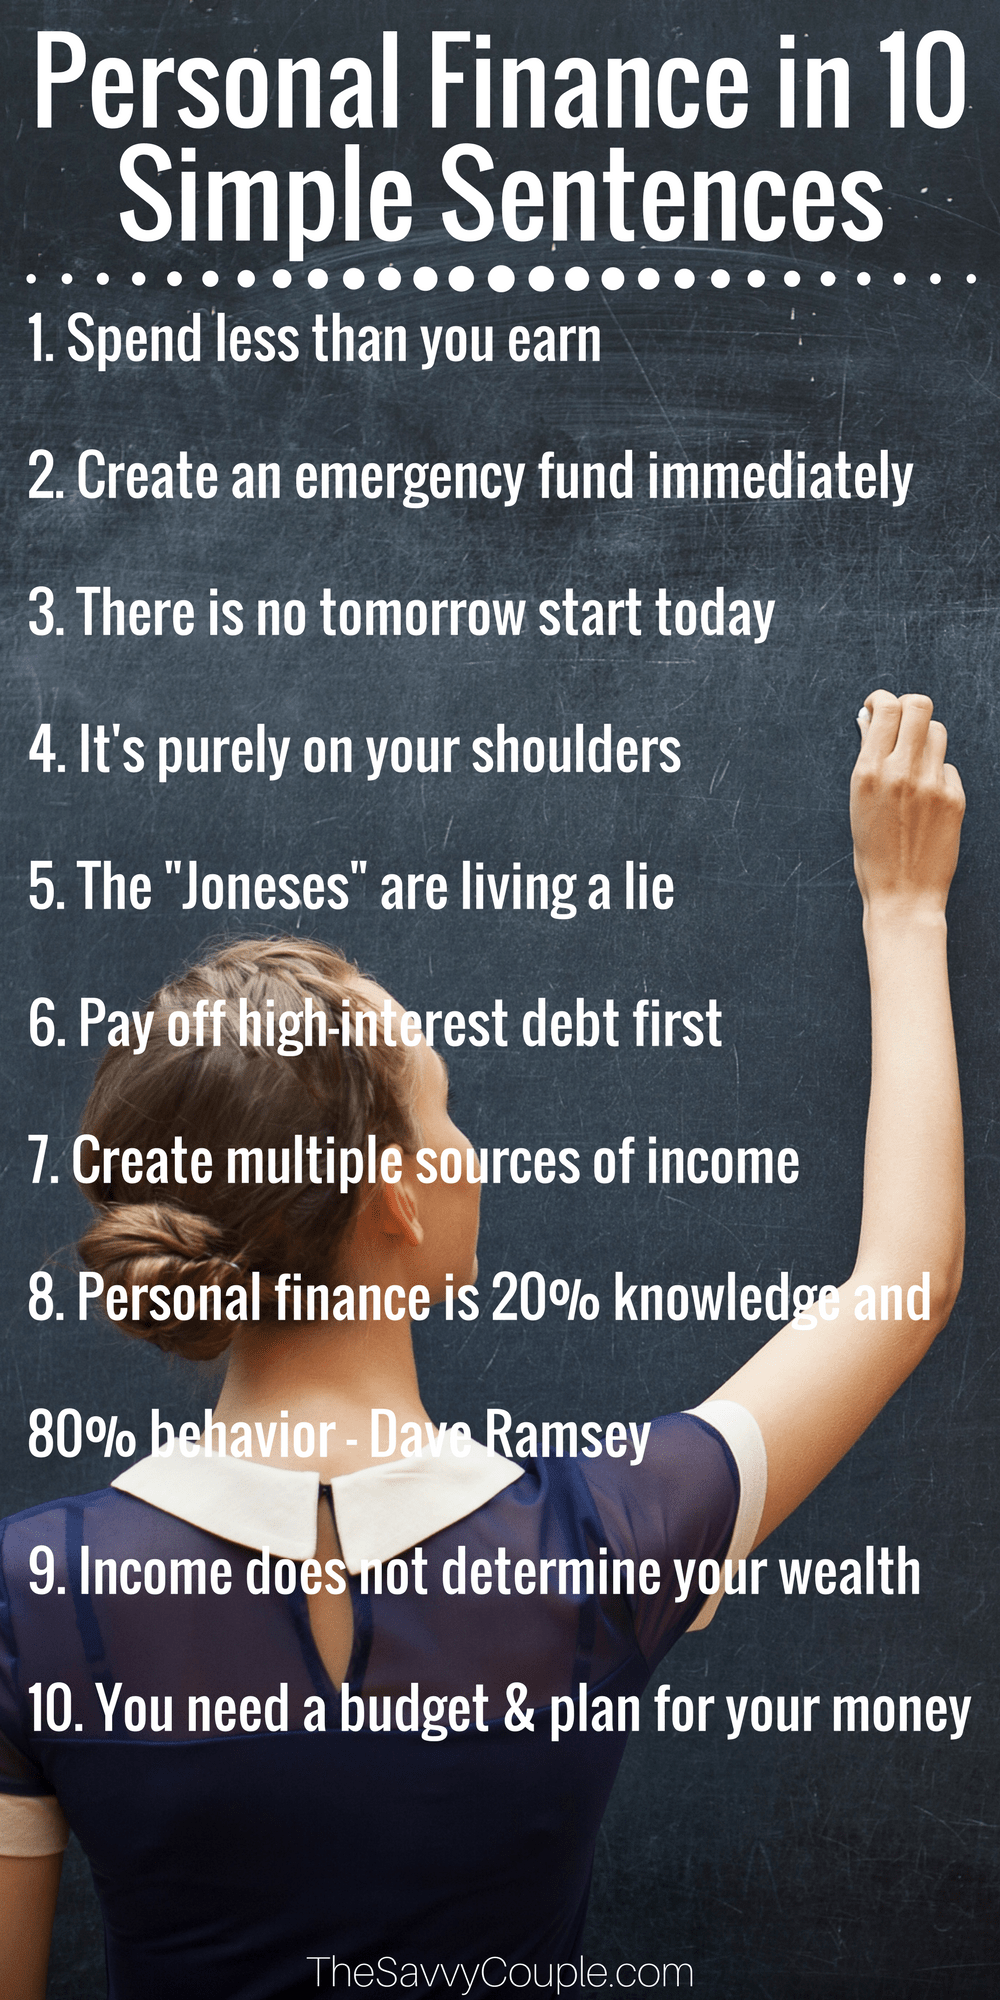 23 Awesome Personal Finance Tips That Will Help Build Your